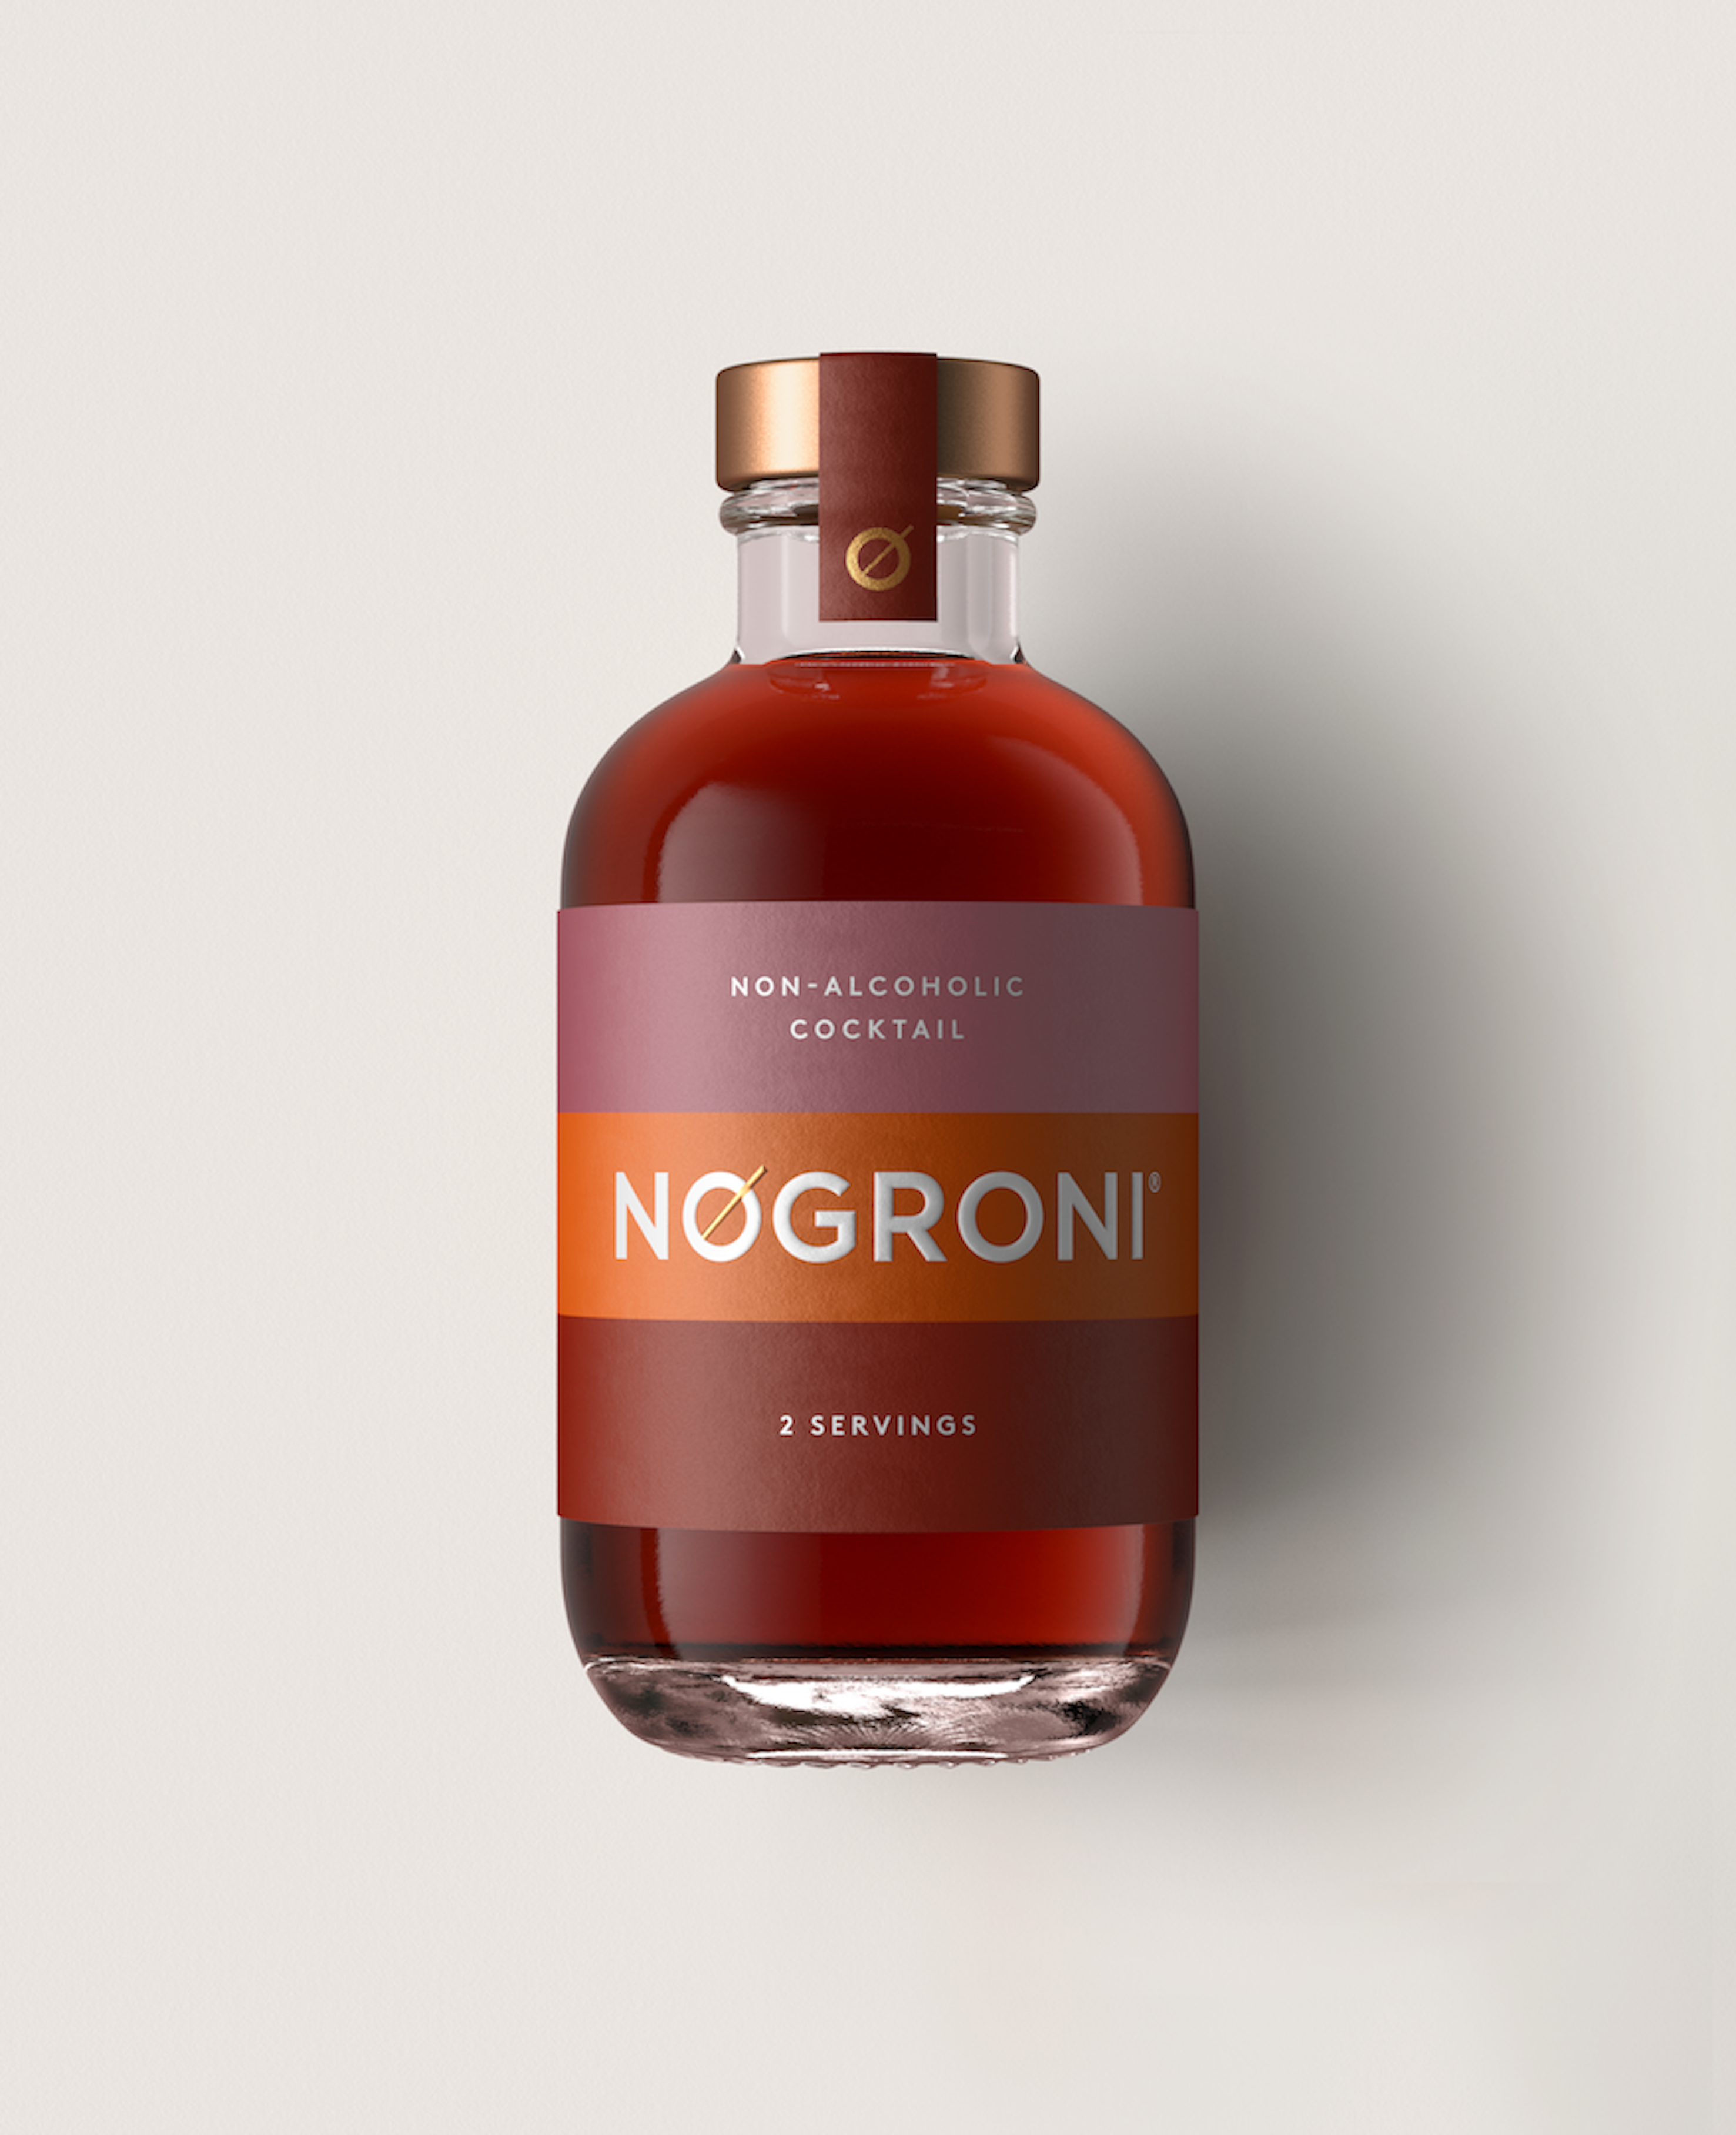 The NOgroni(R)